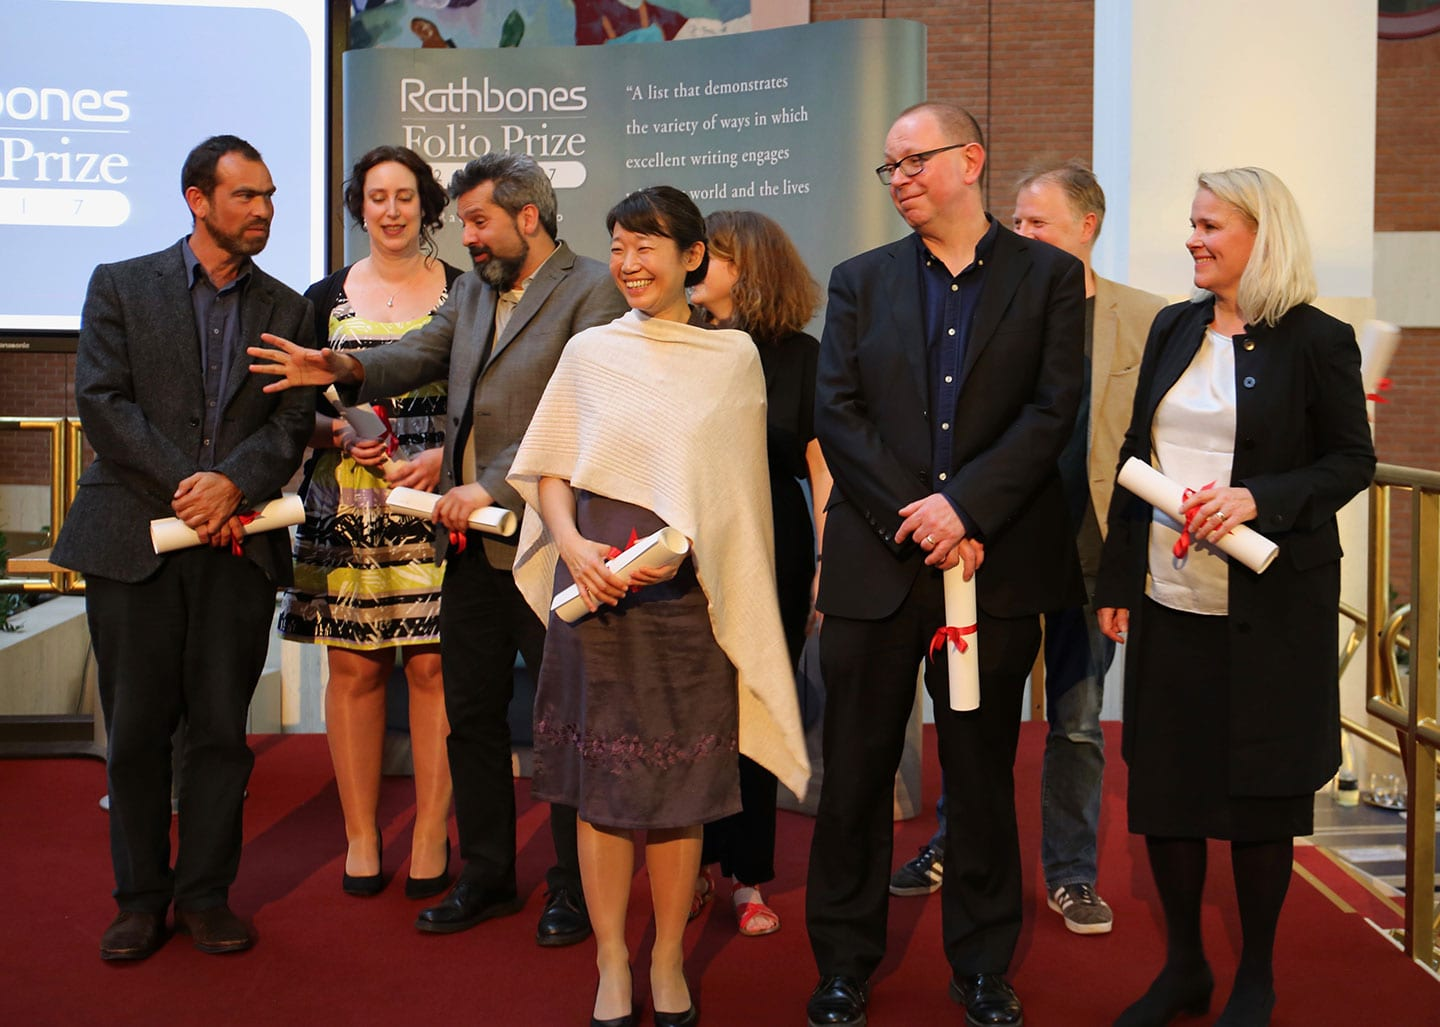 Rathbones Folio Prize shortlisted authors and representatives